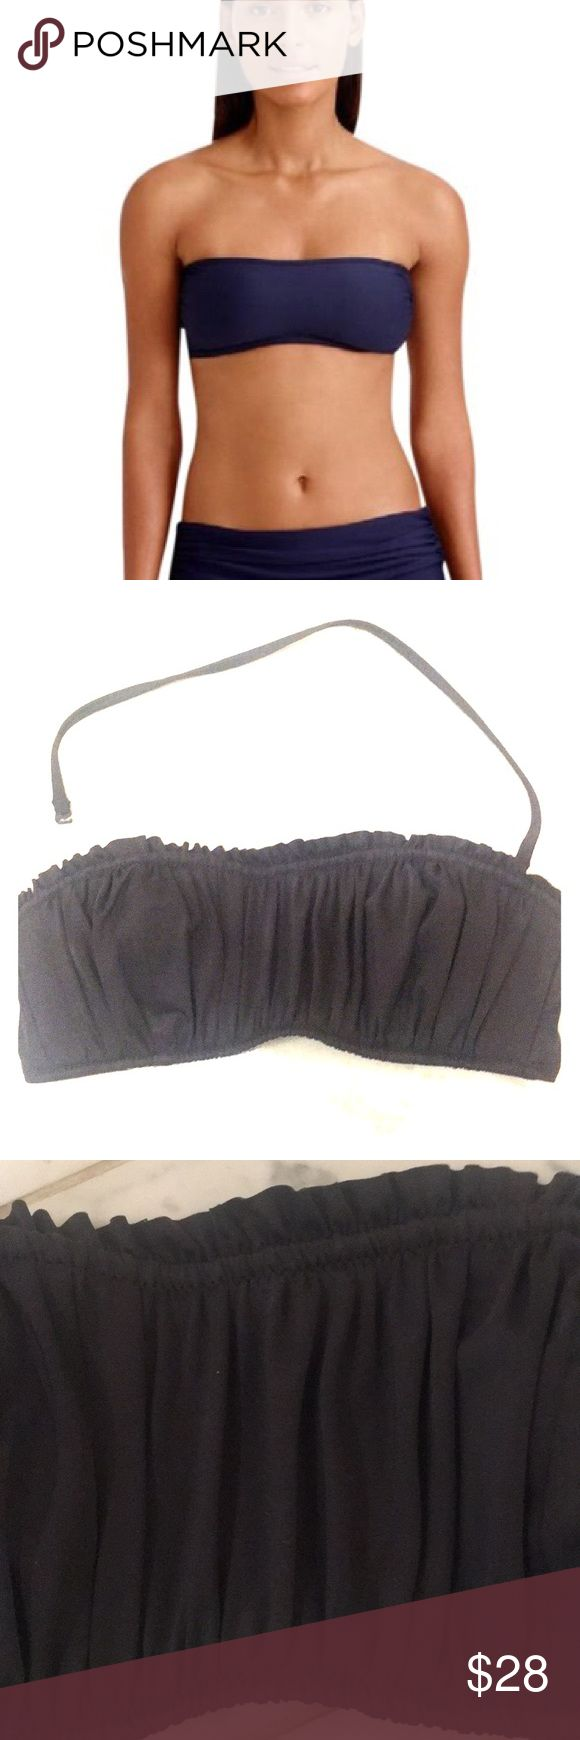 Ruched bandeau bikini top Charcoal grey ruched bandeau bikini top Non removable padding, removable strap Comfy and sexy!! Picture shown on model does not have the ruching but the same look on.... J. Crew Swim Bikinis